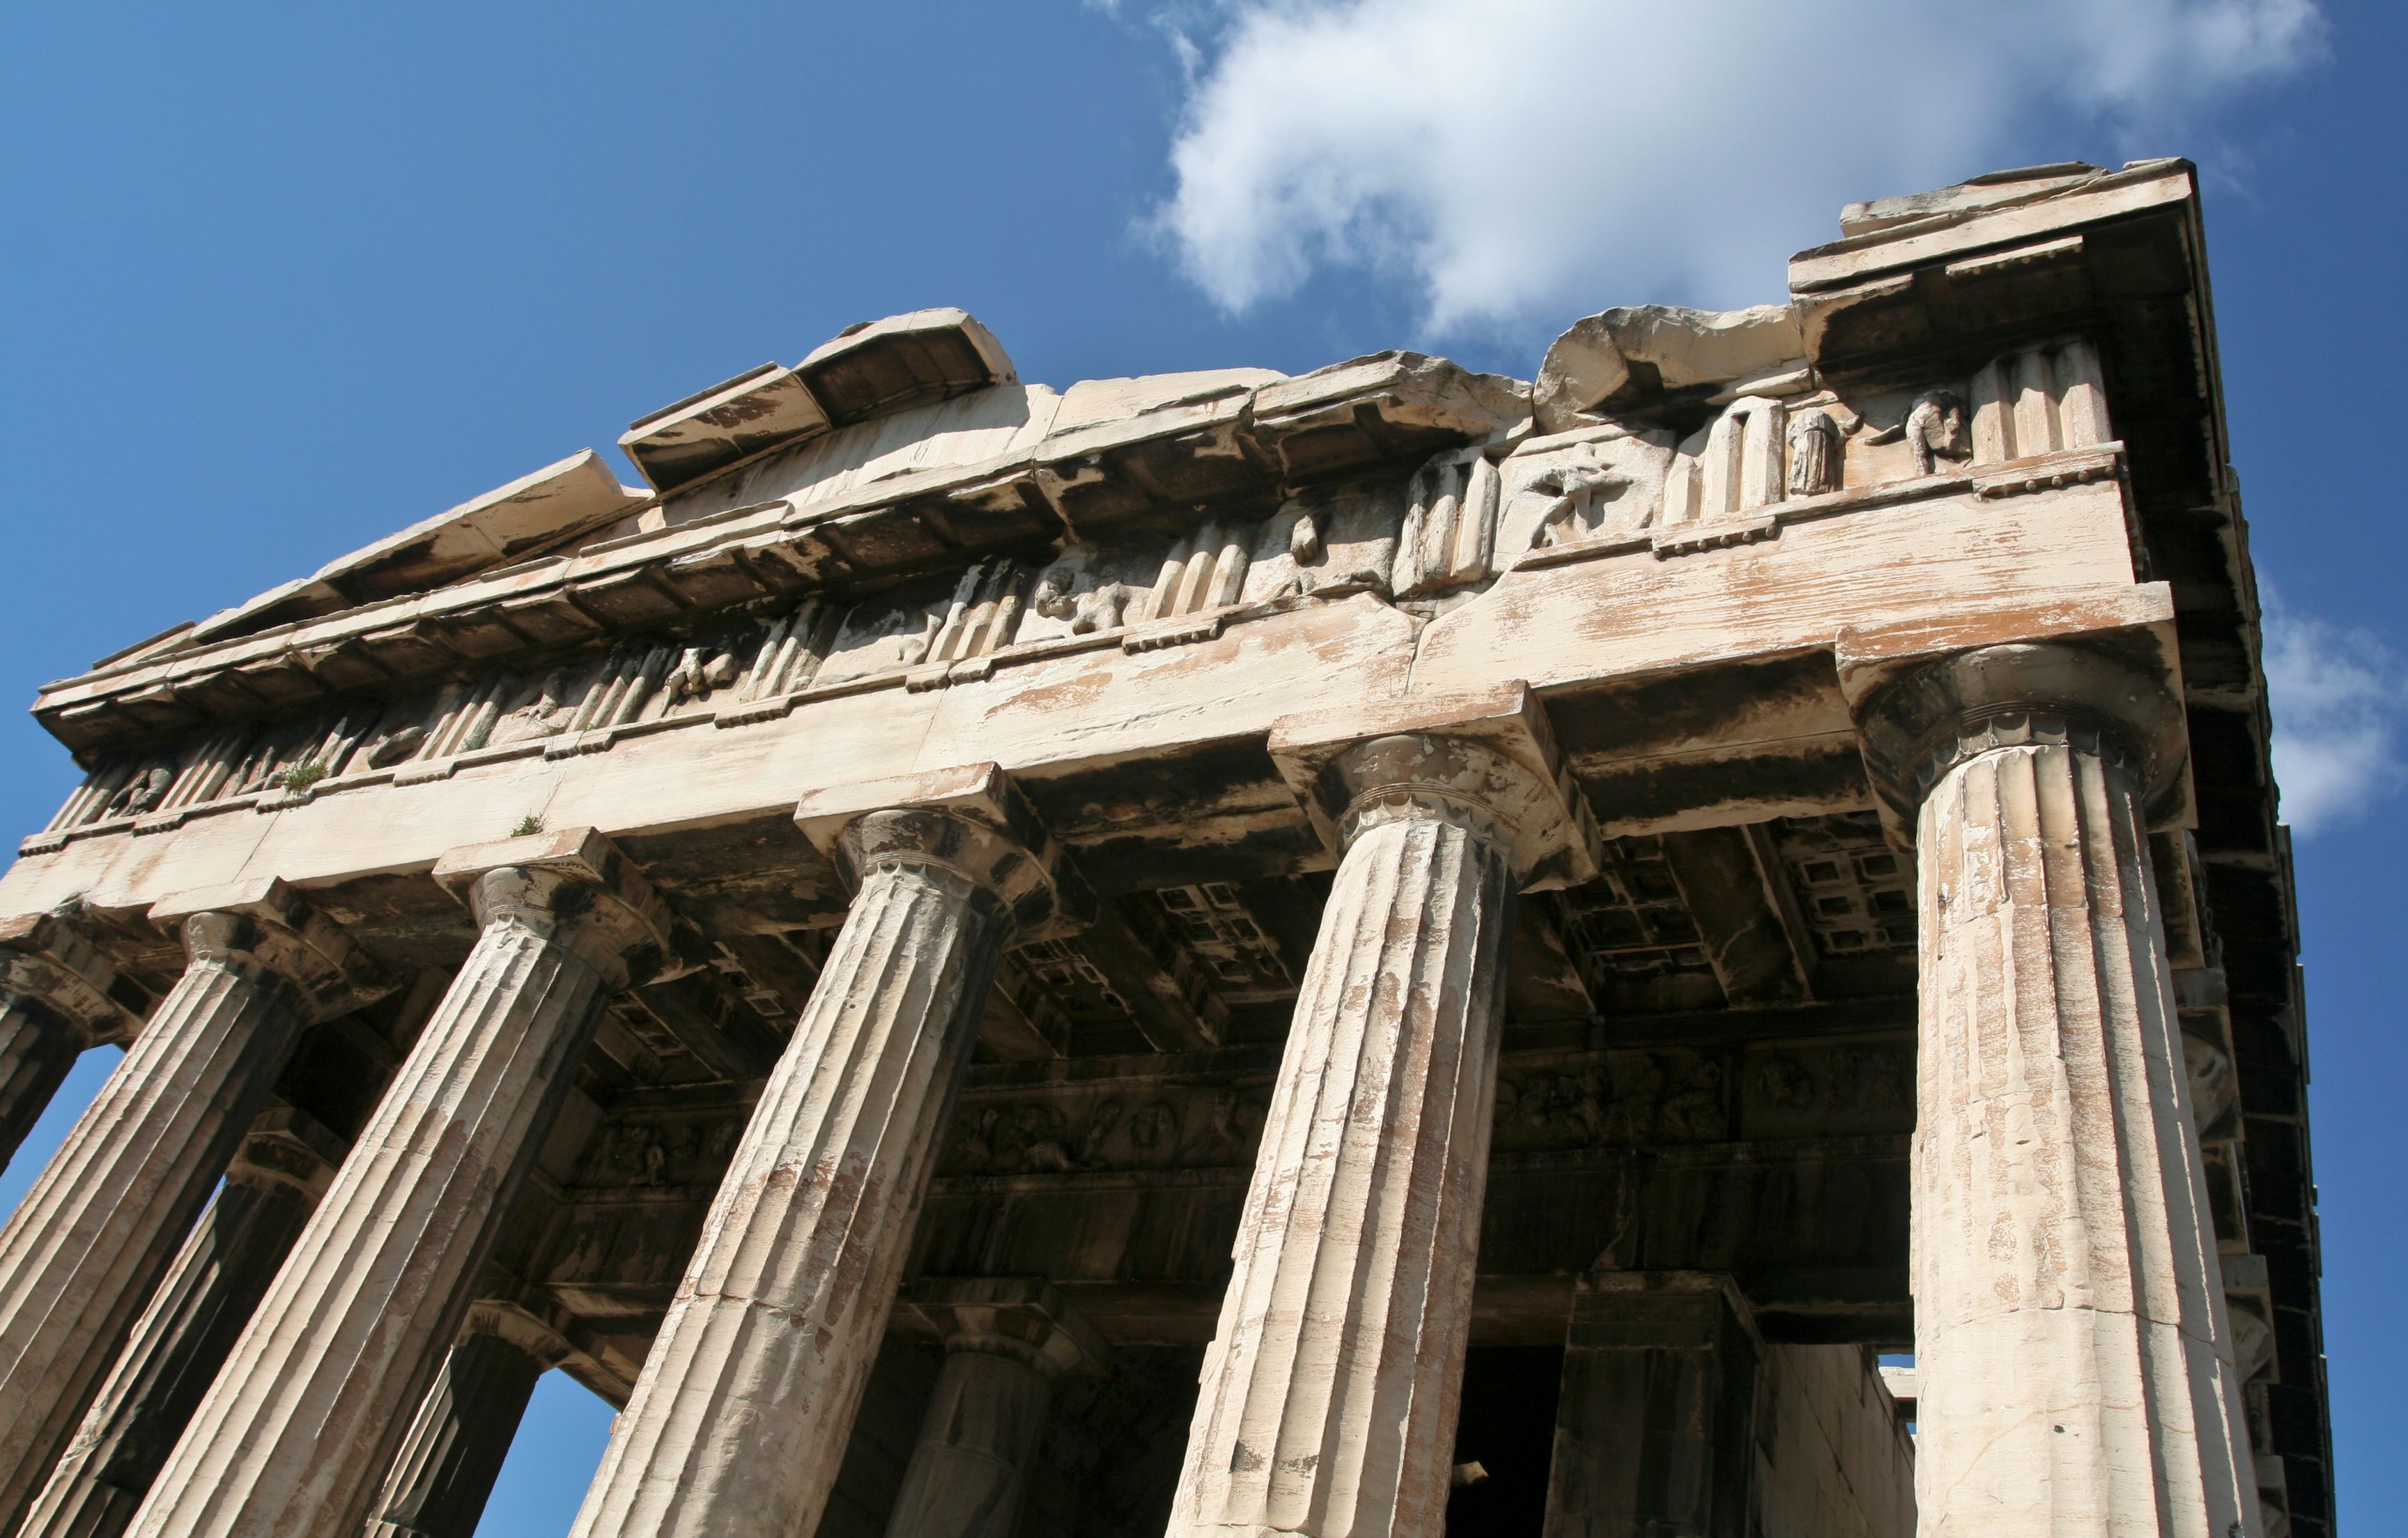 File:Temple of Hephaestus in Athens 19.jpg - Wikimedia Commons